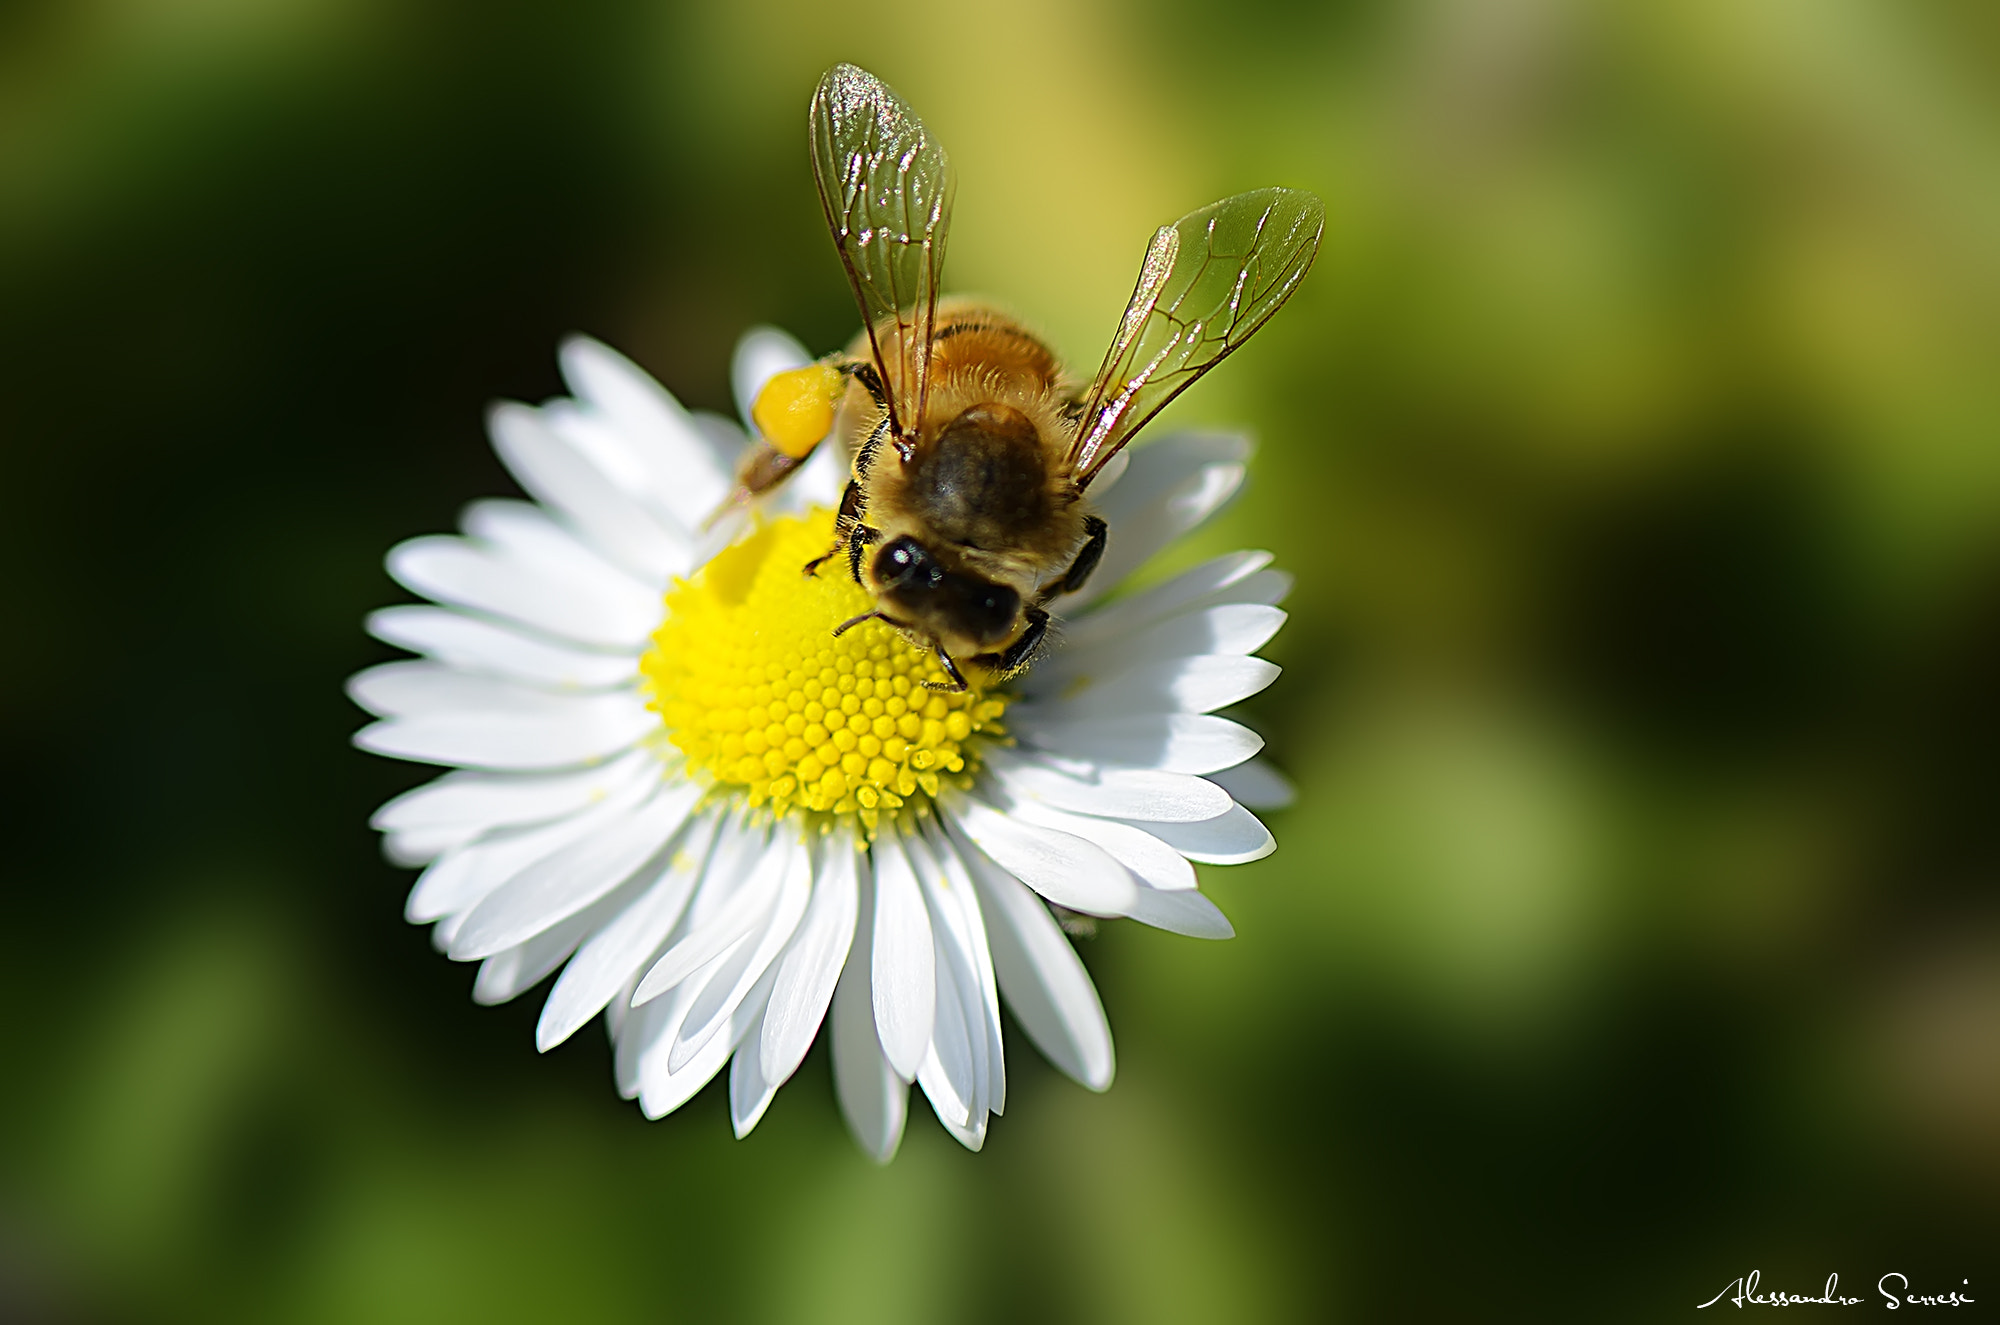 Photograph THE BEE by Alessandro Serresi on 500px